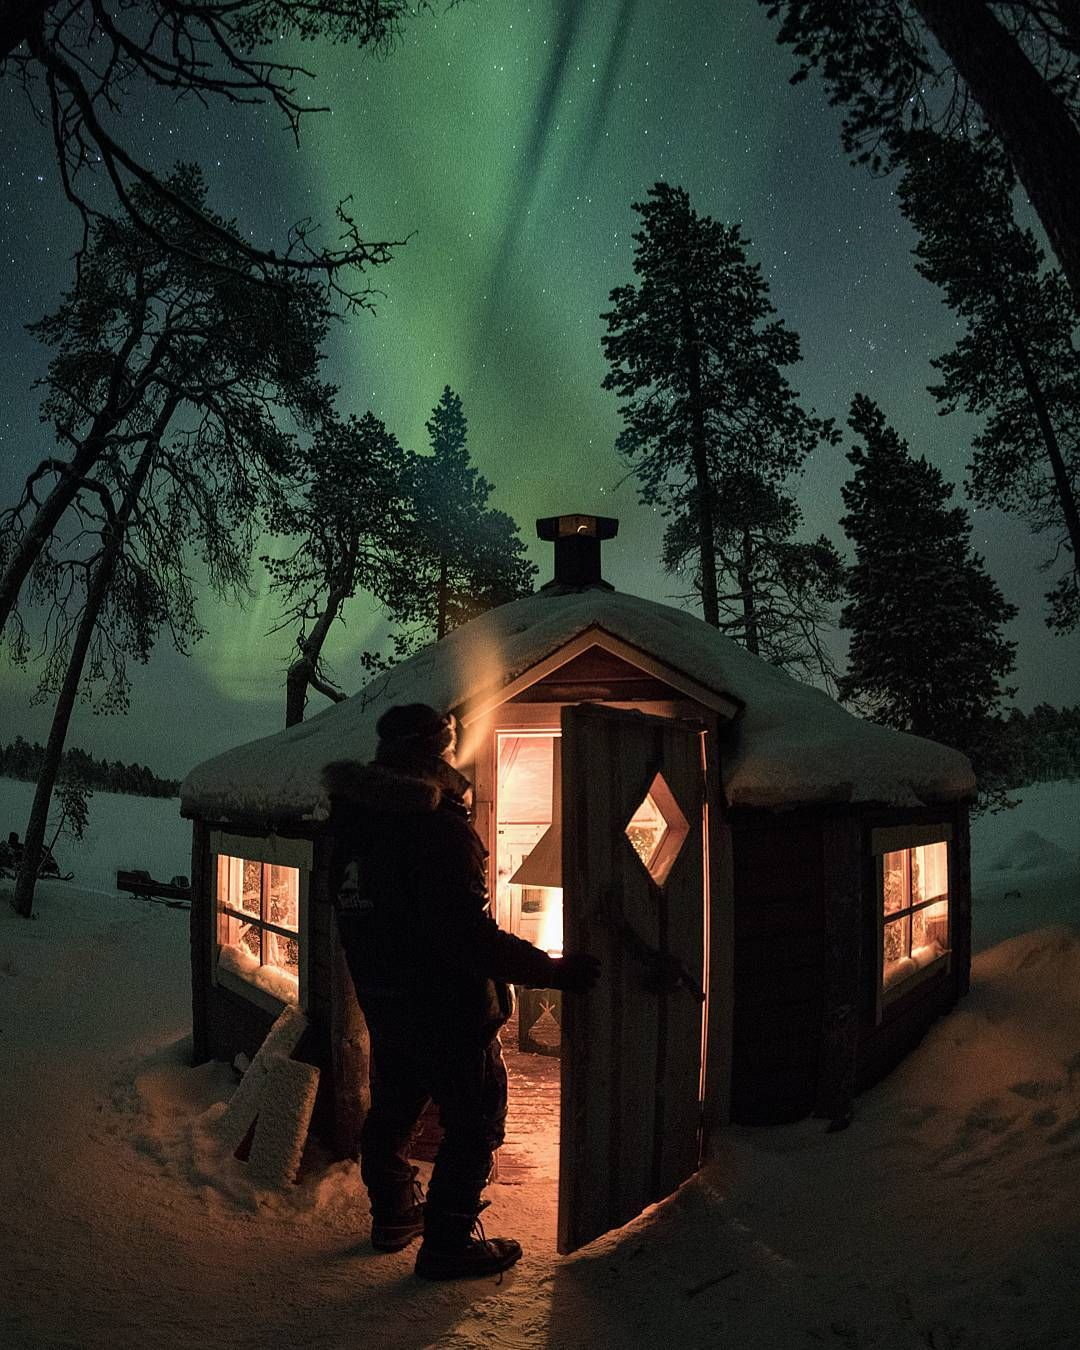 You Inspiration Hut Submit Your Inspiration: This Warm Little Hut On A Frozen Lake In Finland Check Out